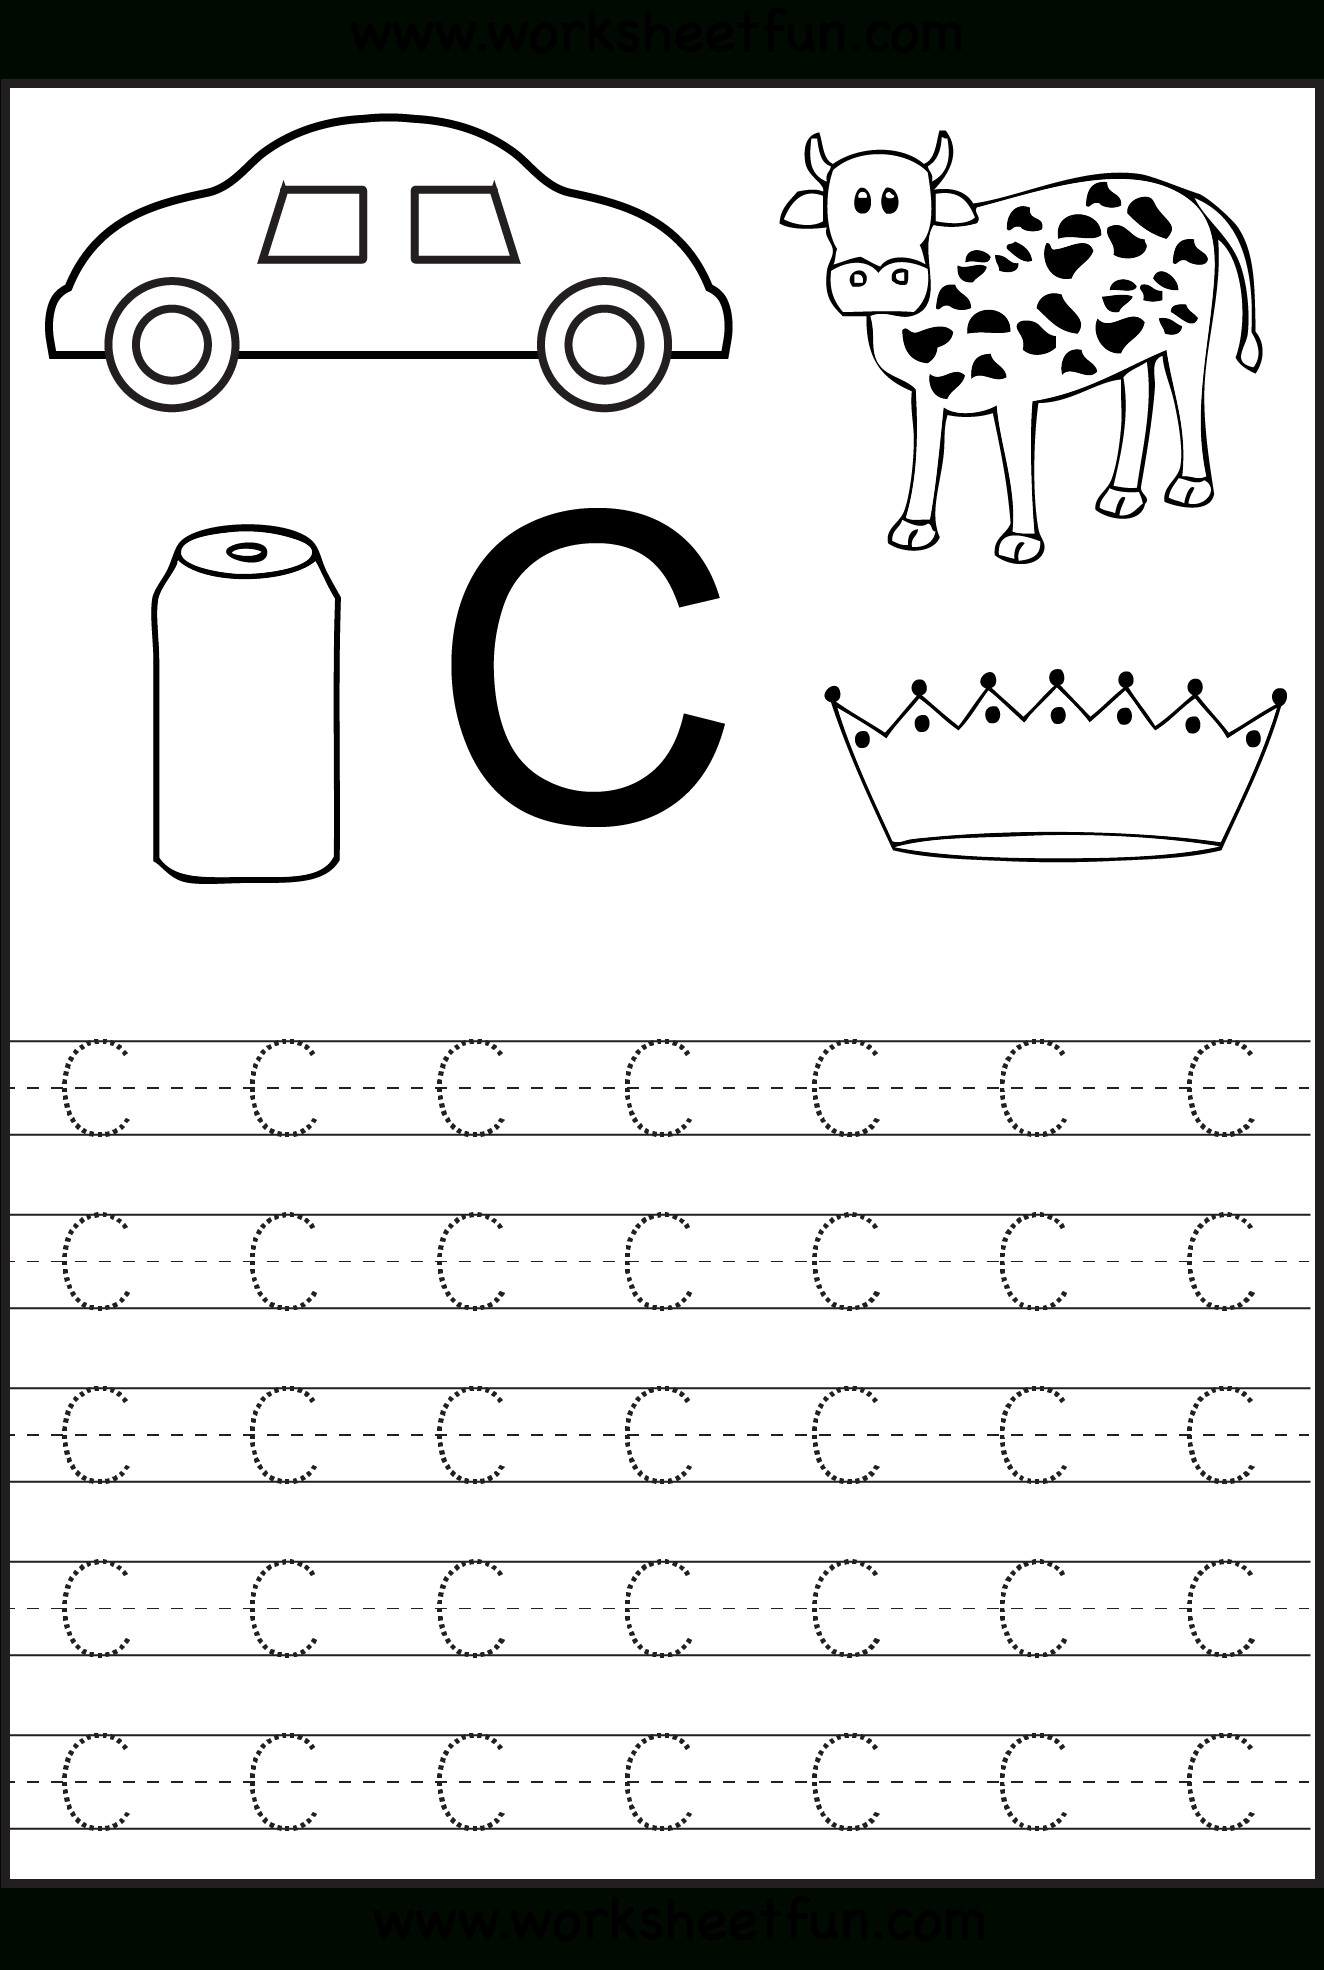 Learning The Letter C | Worksheet | Education | Learning throughout Letter Orientation Worksheets